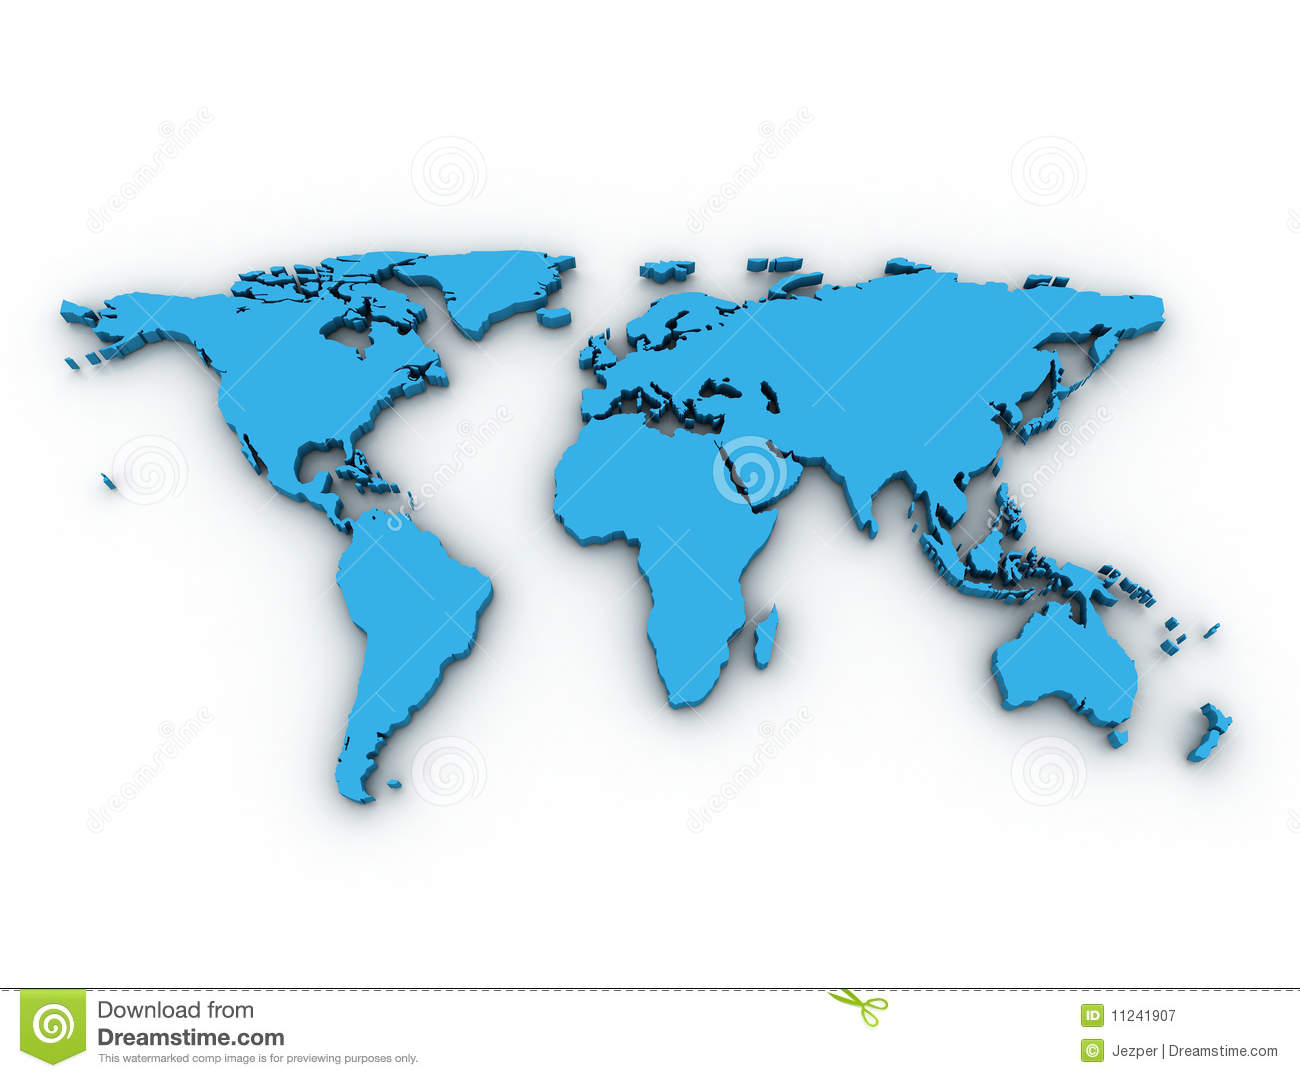 3d World Map Royalty Free Stock Photo - Image: 24847845 WORLD MAP 3D